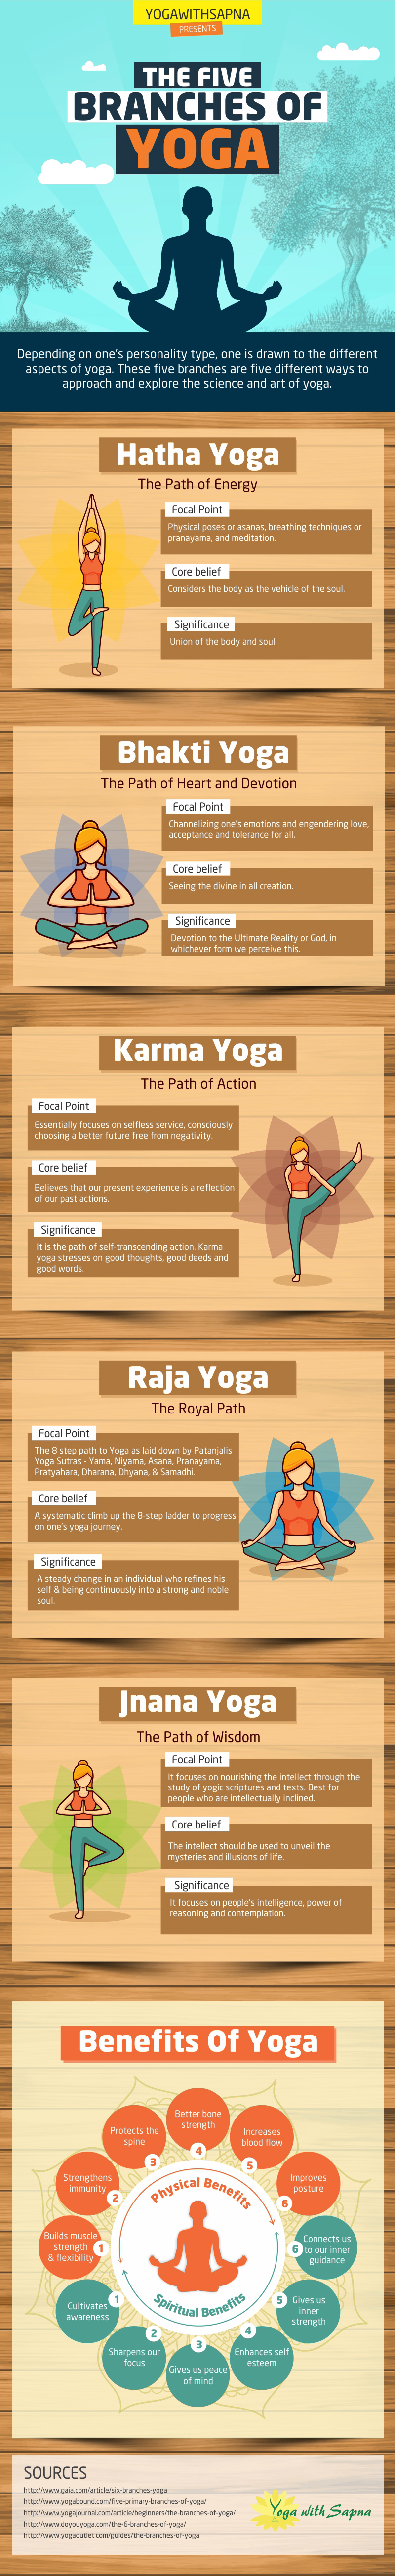 five branches of yoga infographic